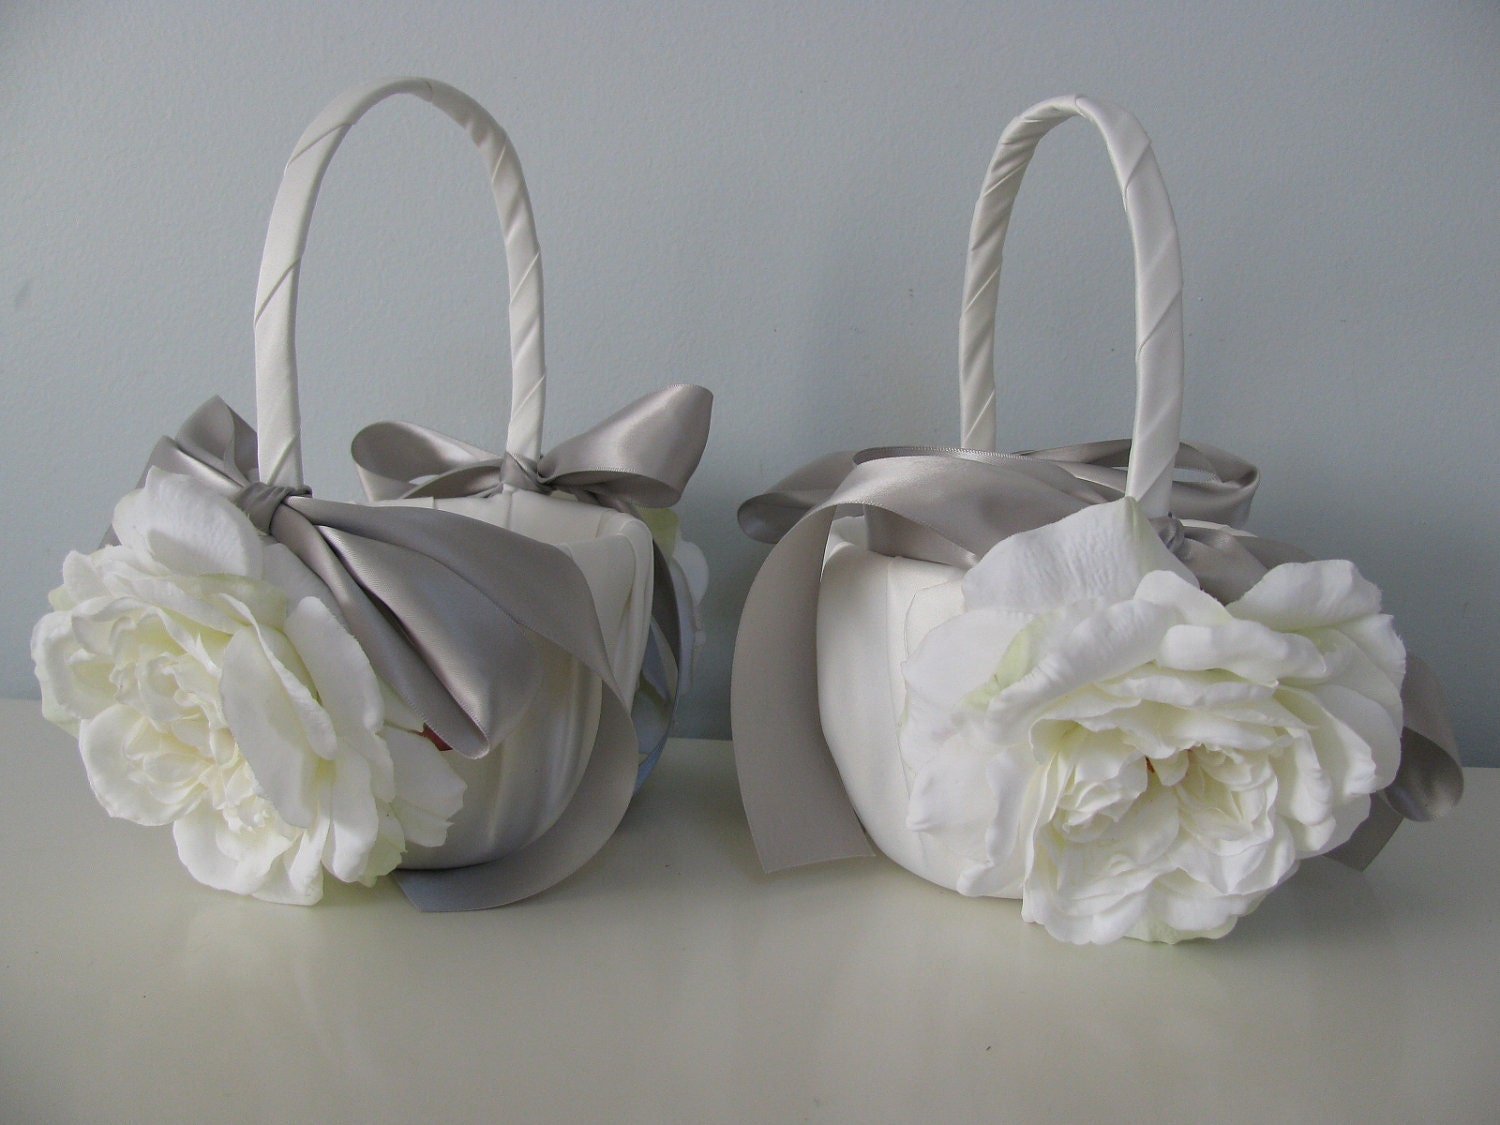 Satin Flower Girl Baskets Set of 2 Shown Ivory by astylishdesign